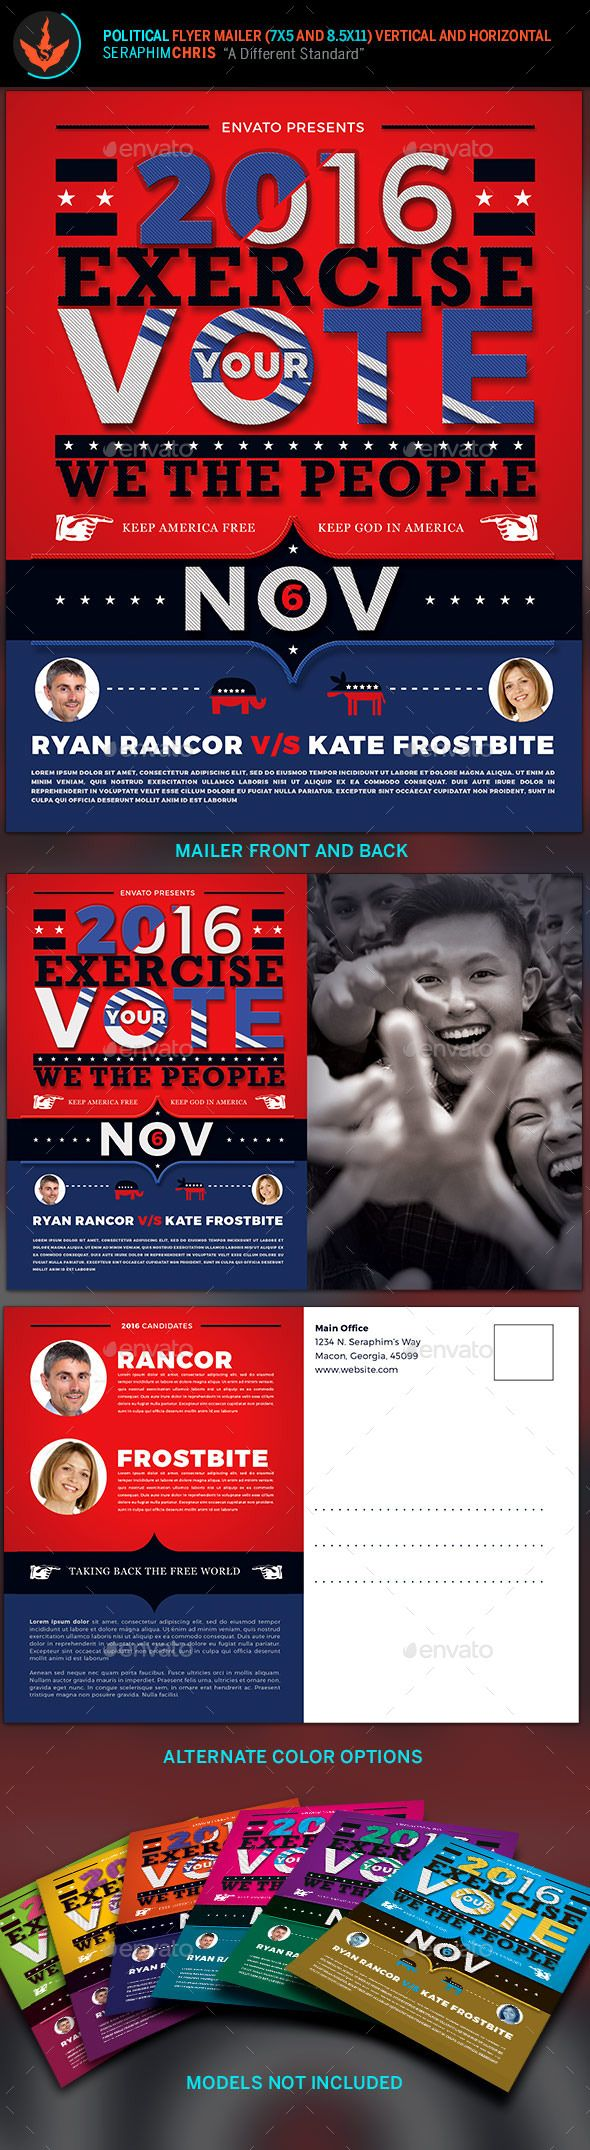 exercise your vote political flyer mailer template corporate